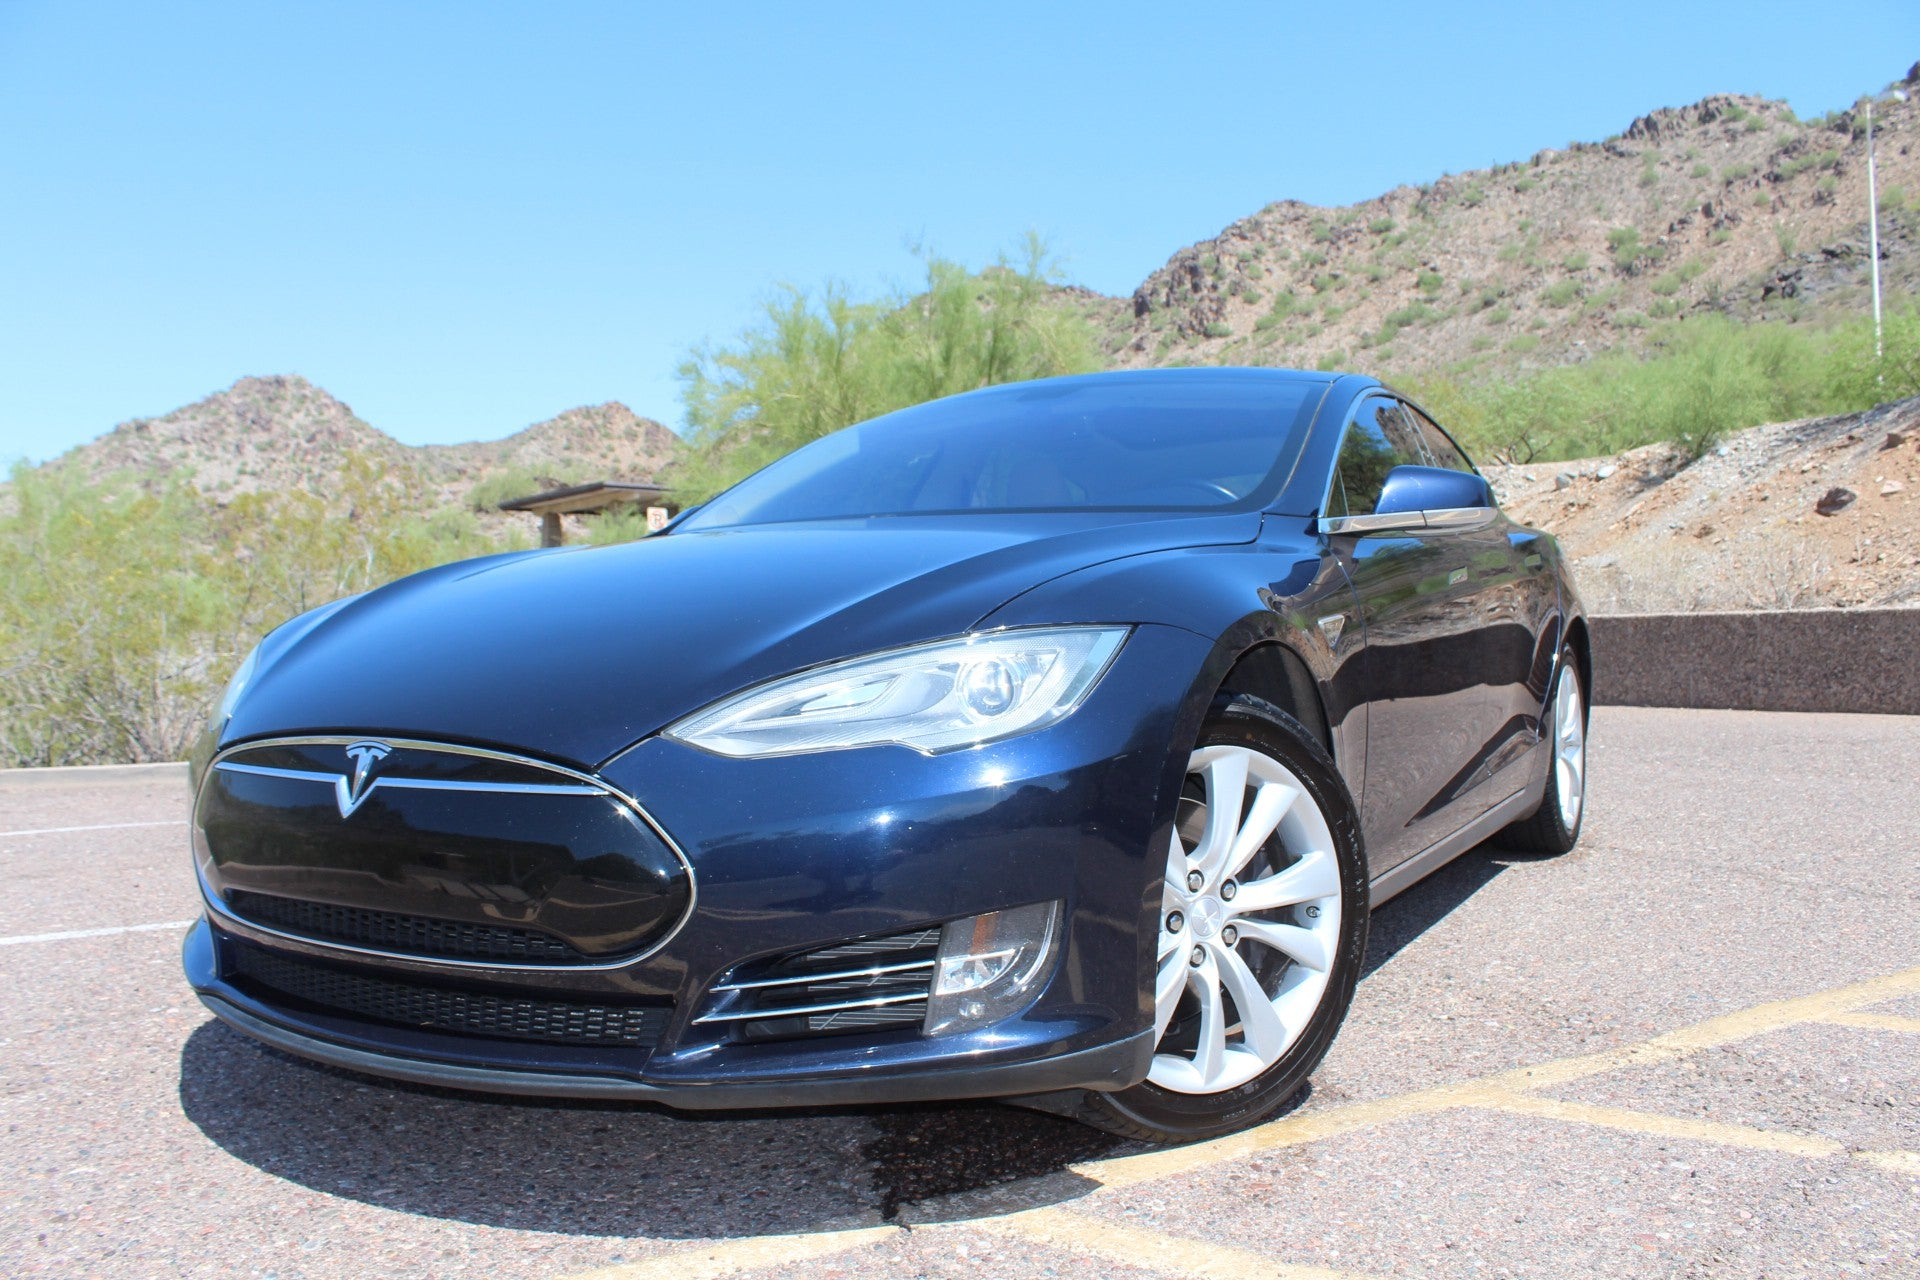 Tesla Model S Cost of Ownership Report After 250,000+ Miles